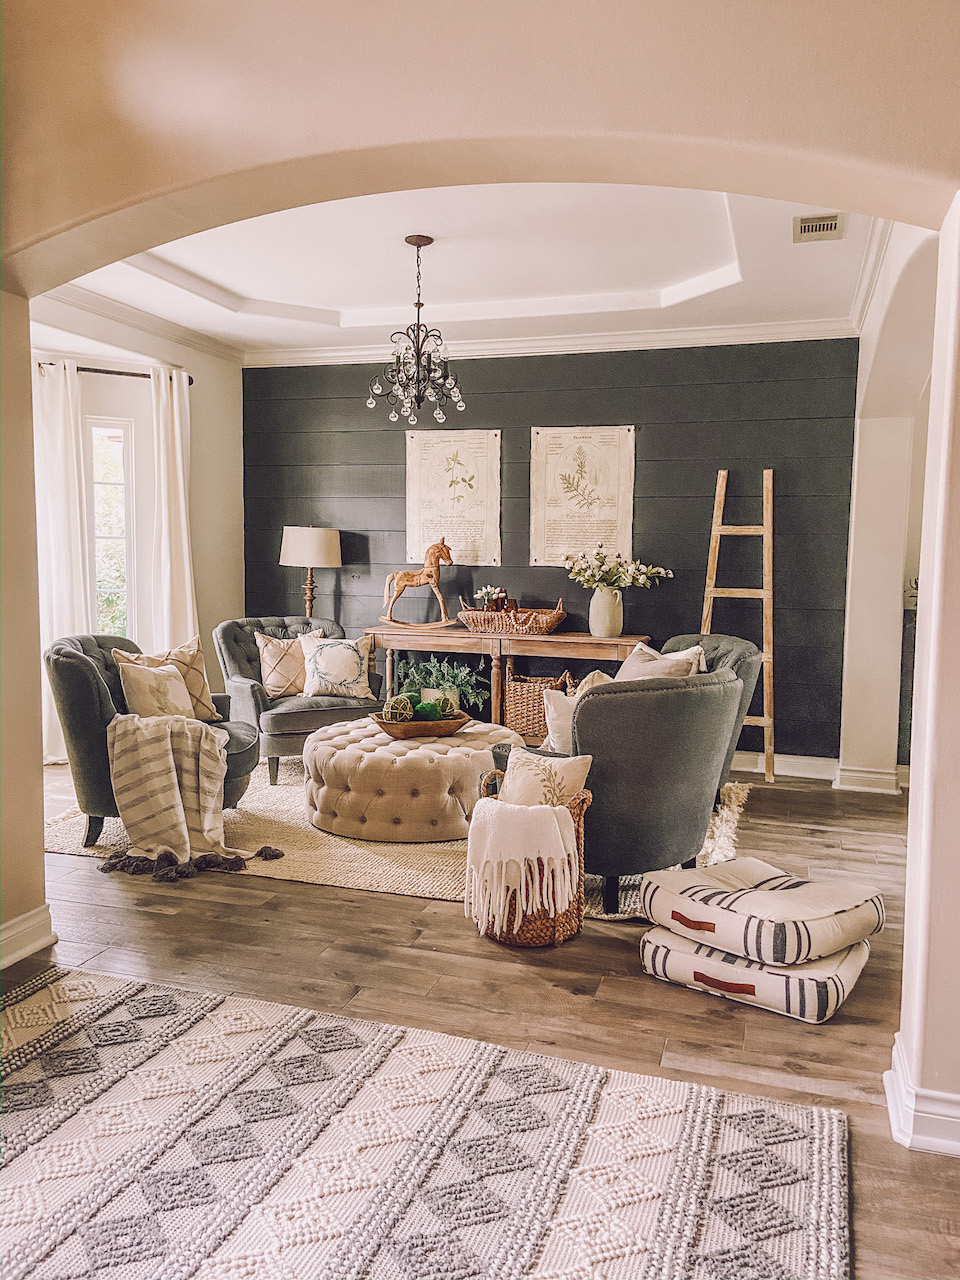 Dark Contrast Wall Sitting Room Refresh Life By Leanna Ironore Darkwall Modernfarmhouse Farmhousestyle Shiplap Feat In 2020 Sitting Room Design Home Home Decor